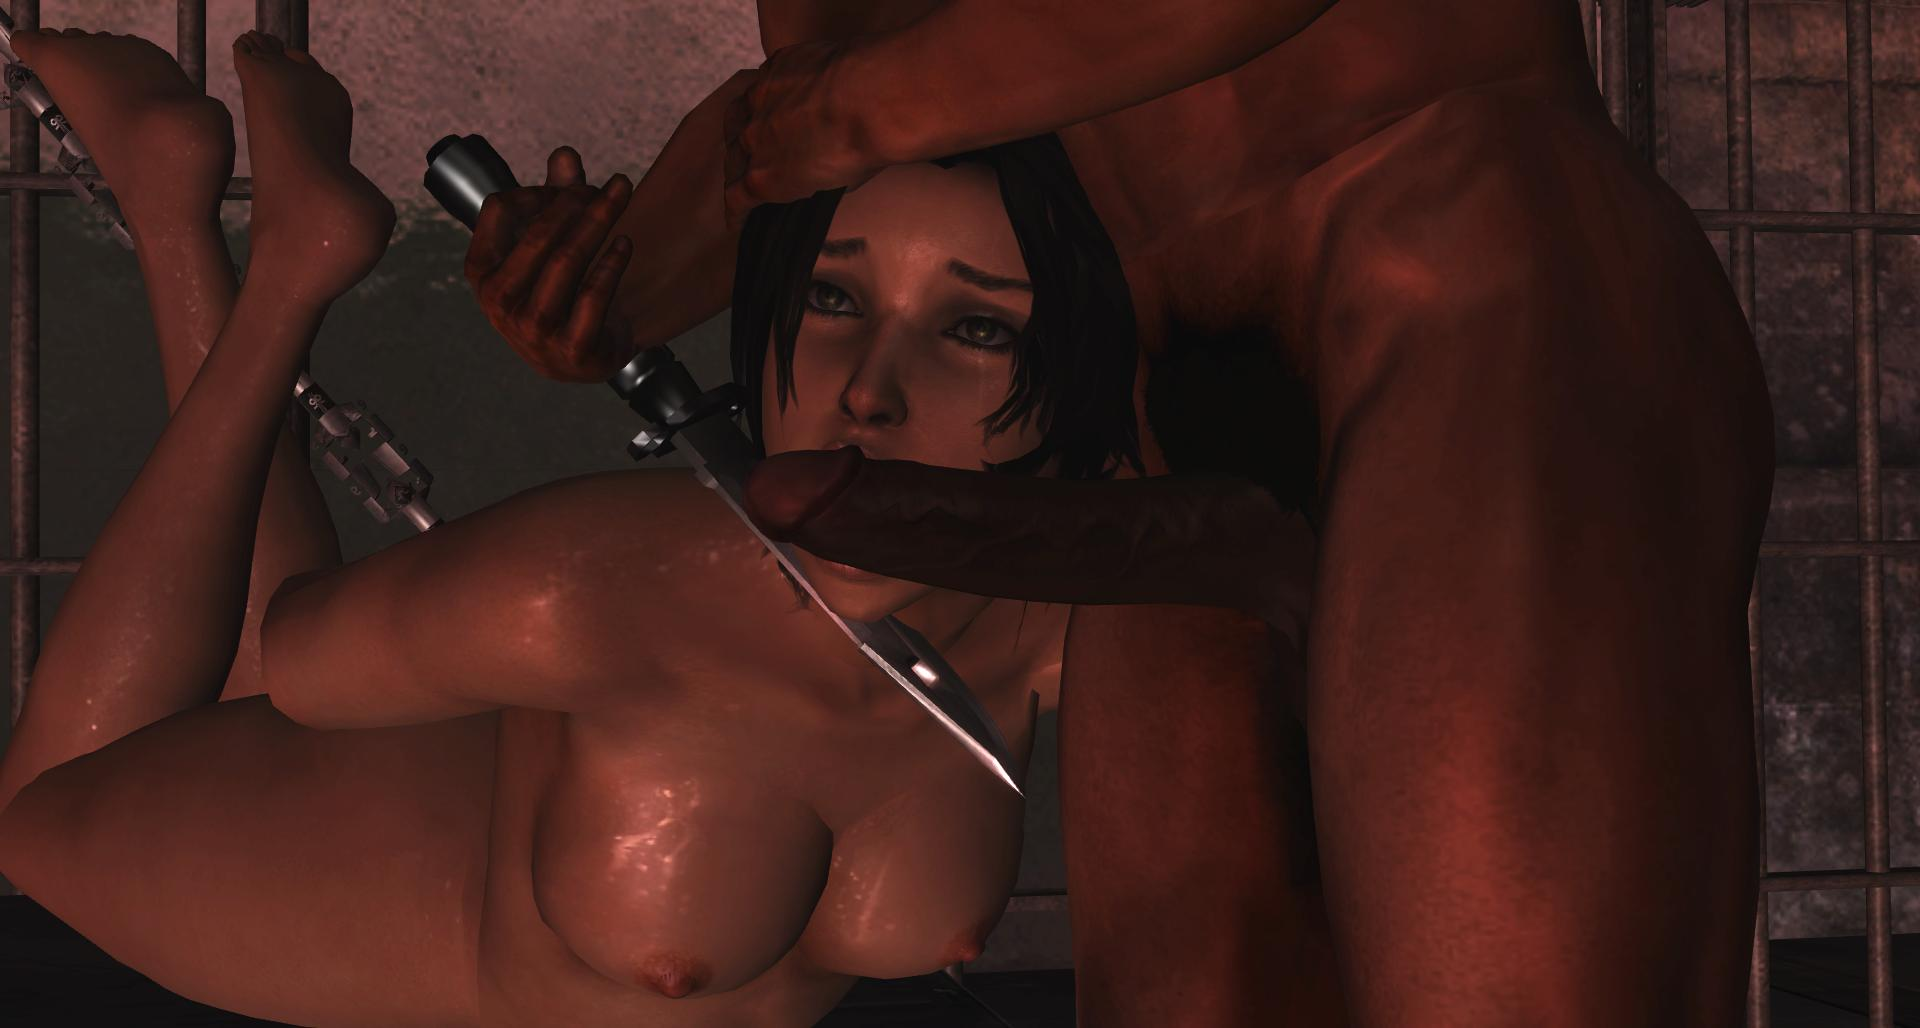 Tomb raider 2013 sex patch exposed photo